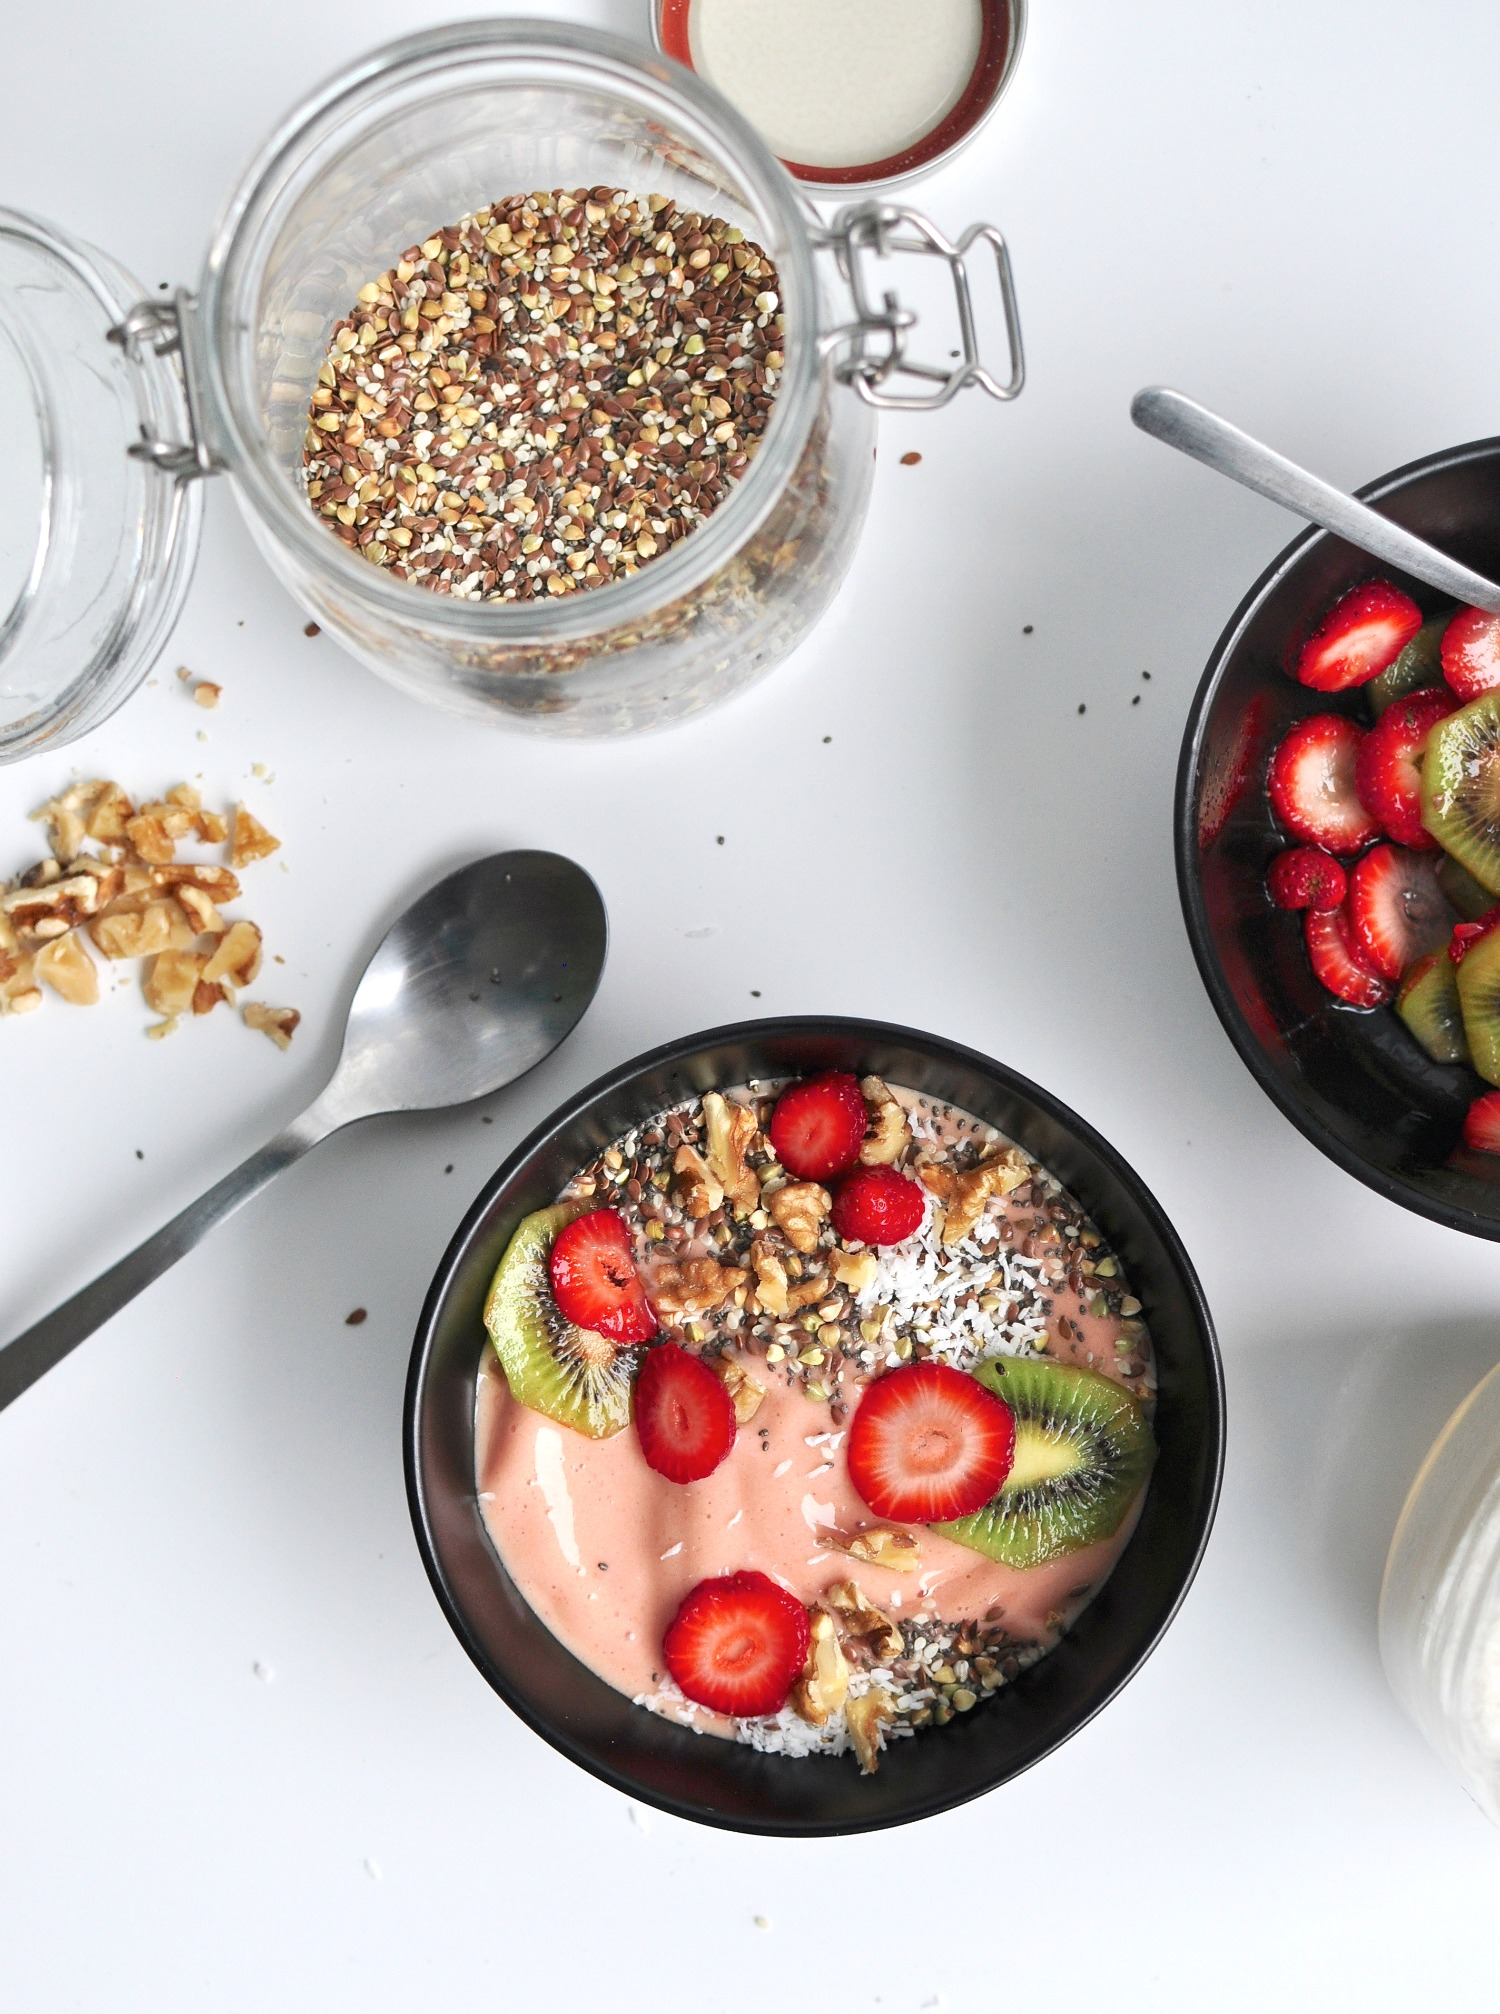 Mango, Banana and Strawberry Smoothie Bowl Recipe